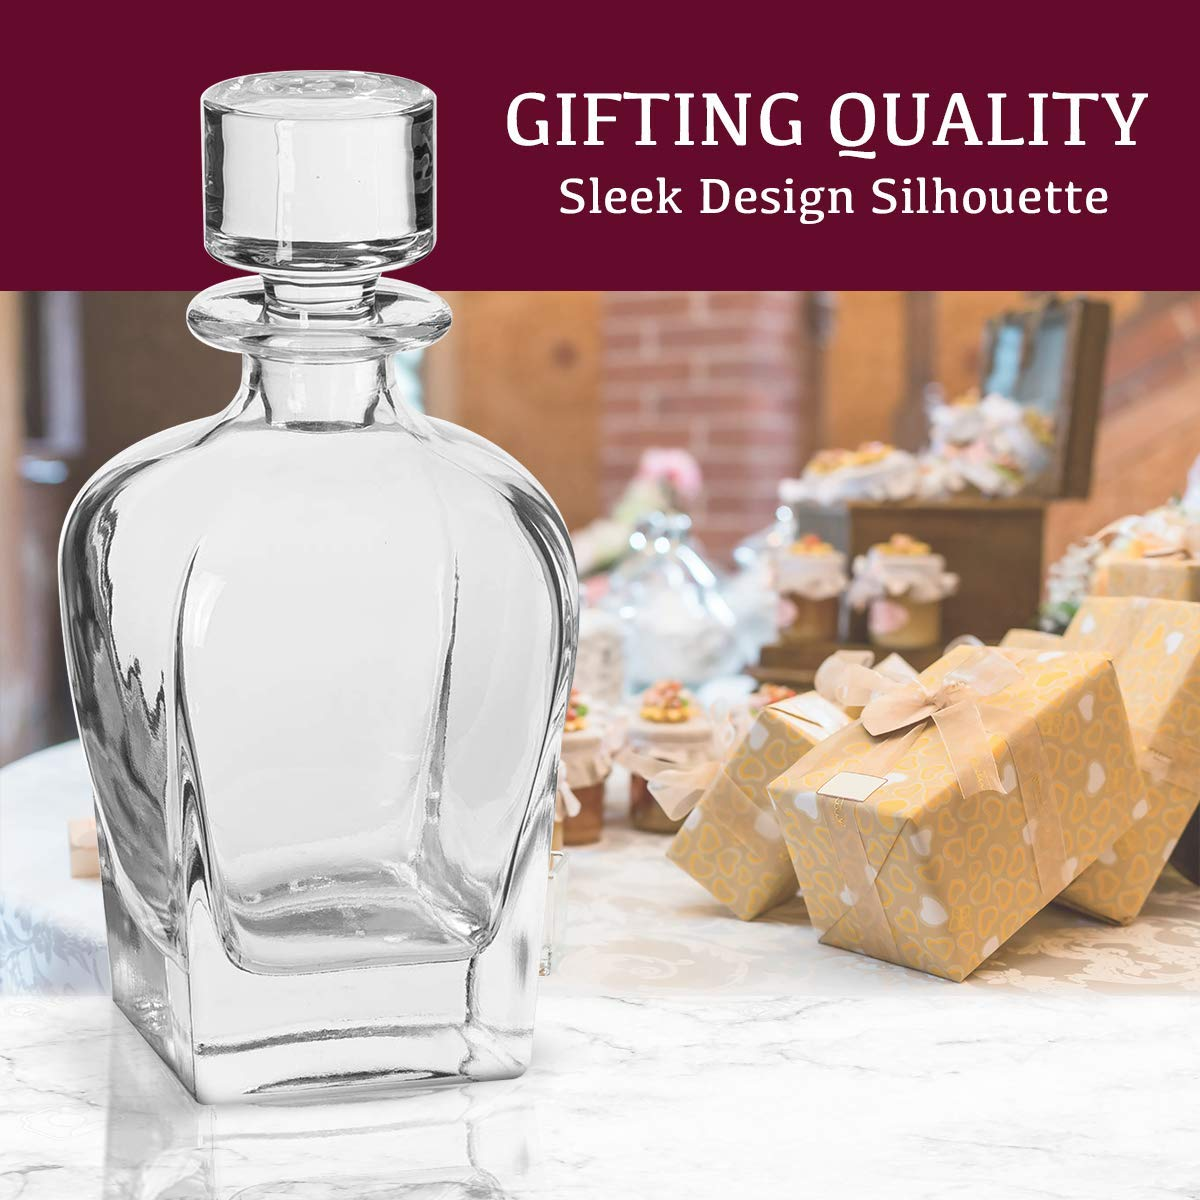 Square Design Coordinates Wine Decanter With Double Old Fashioned Glass Made From Lead Free Glass Barware Includes 1 Decanter And 4 Glasses Trinkware Meriden Whiskey Decanter And Glass Set